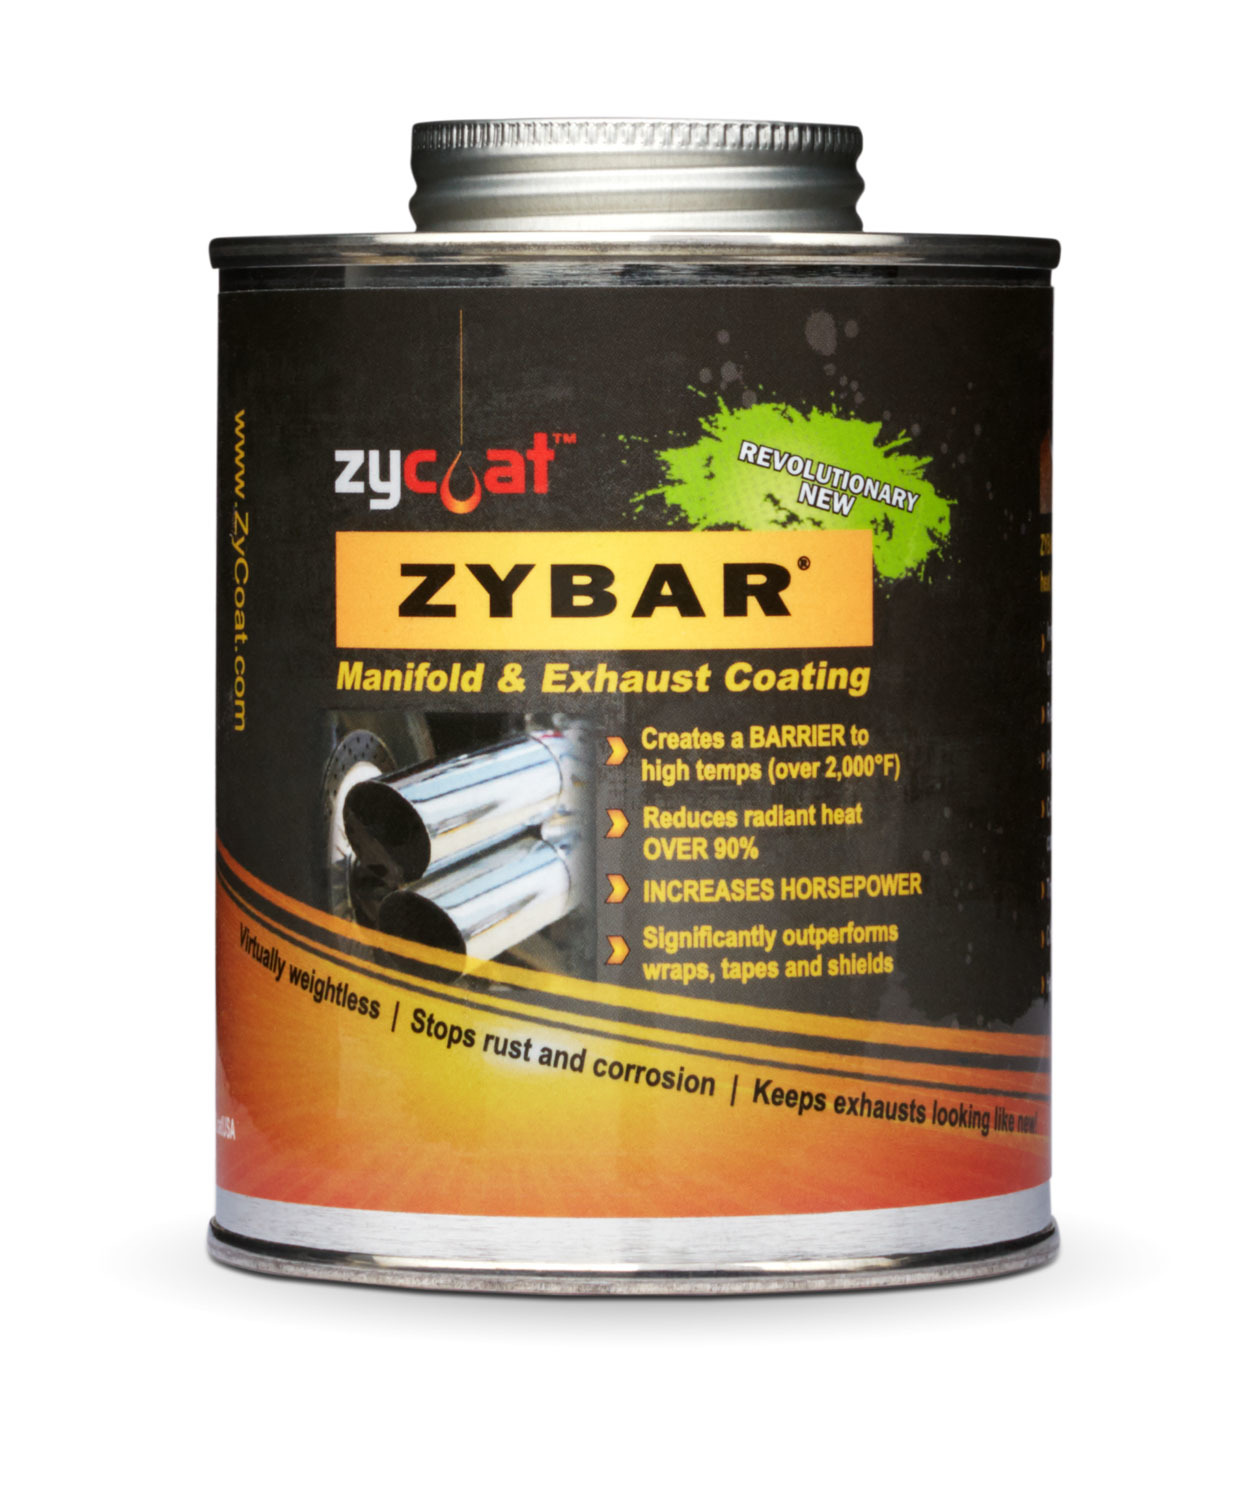 Zycoat 11016 Paint, Exhaust / Header, High Temperature, Ceramic Urethane, Midnight Black, 16 oz Can, Each